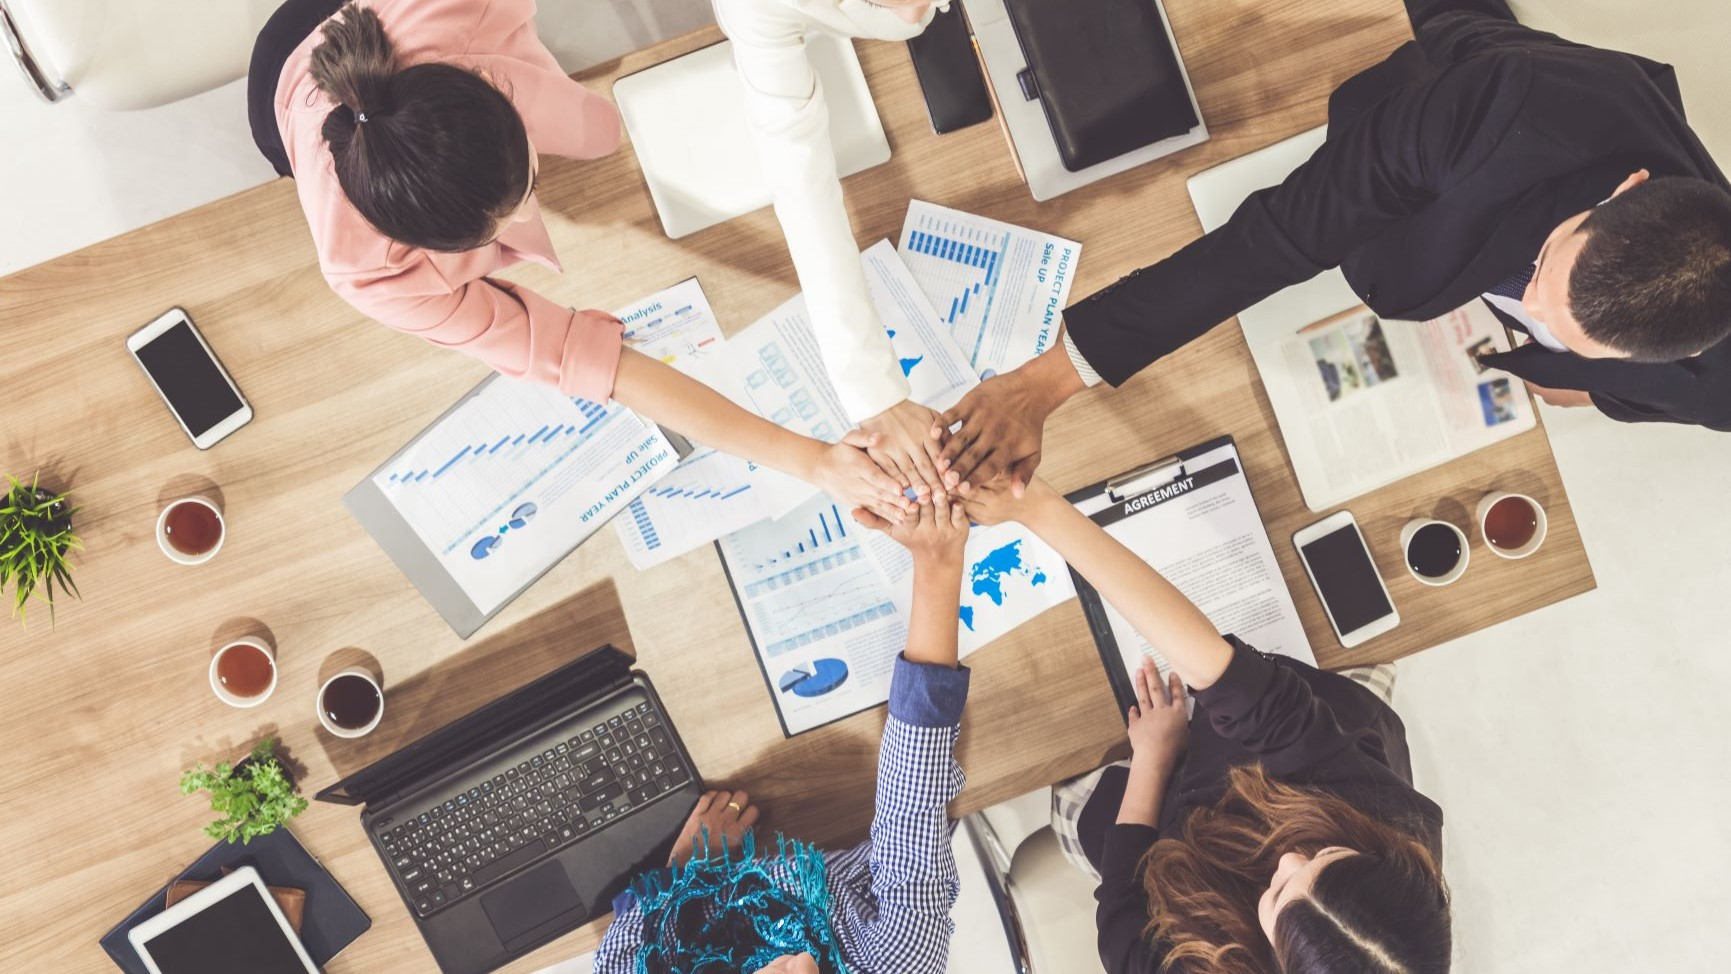 Creating a great workplace culture